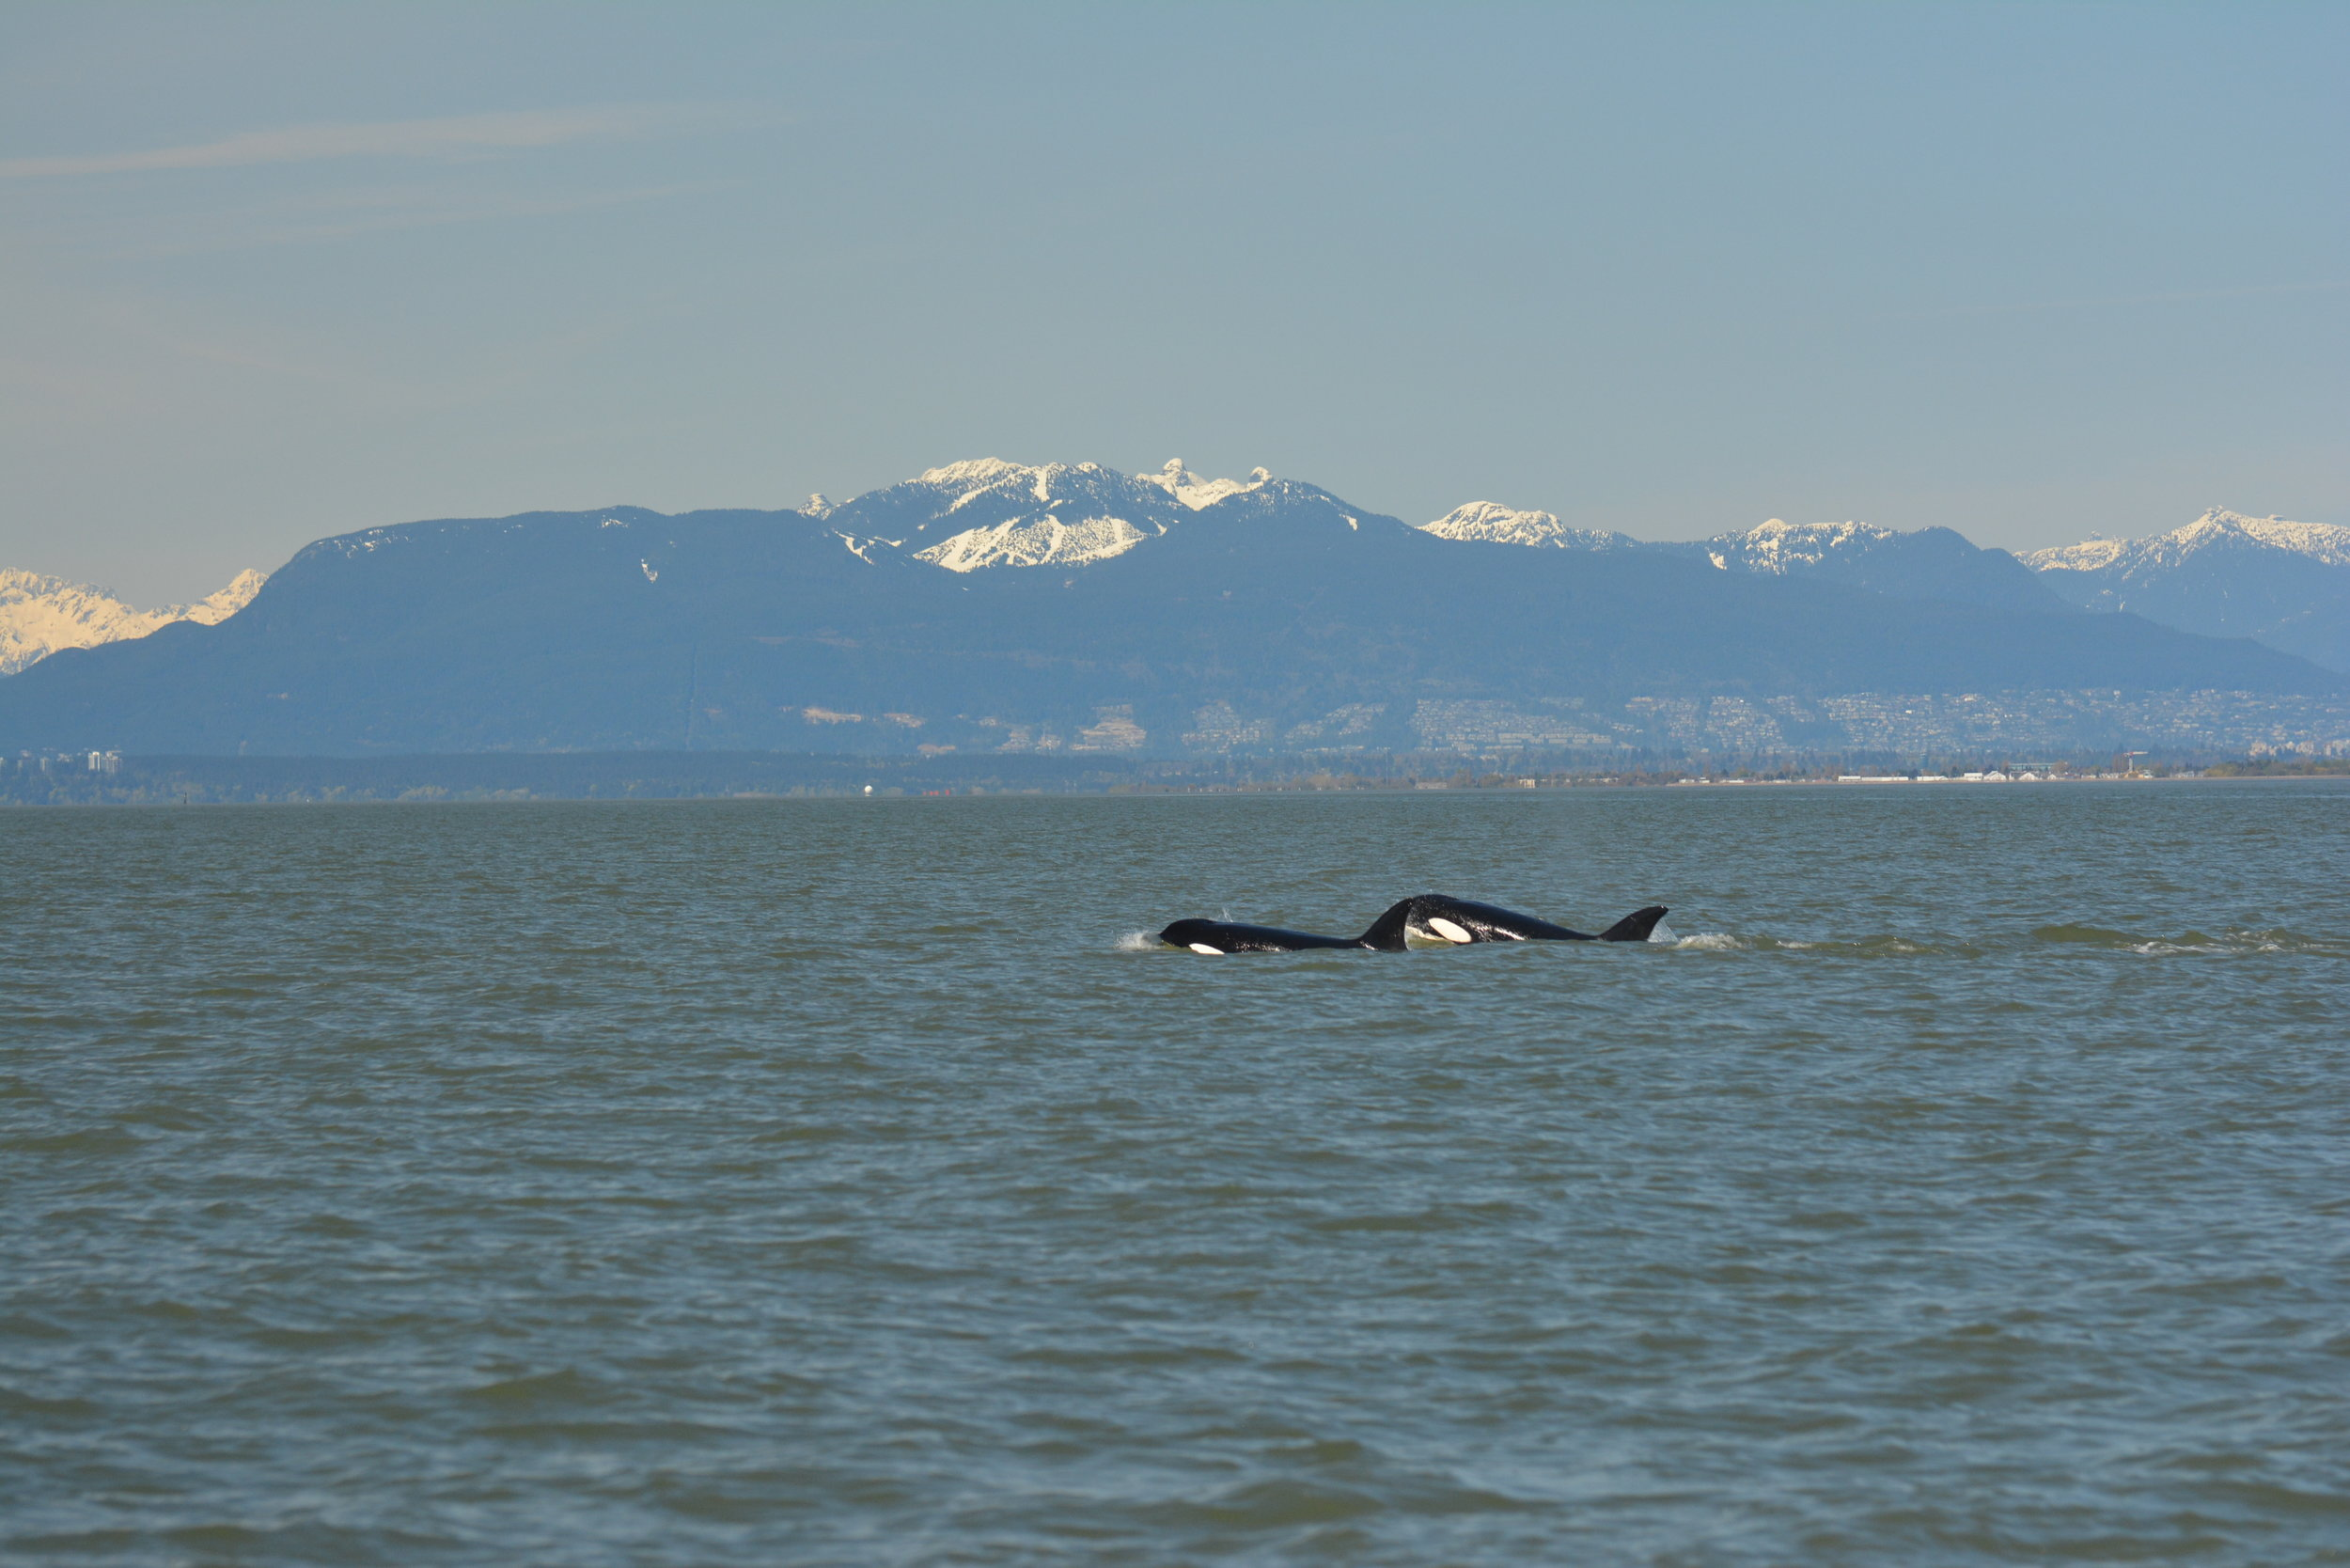 Whales from the T36A pod surfacing with BC's coastal mountains in the background. Photo by Lili Simon.